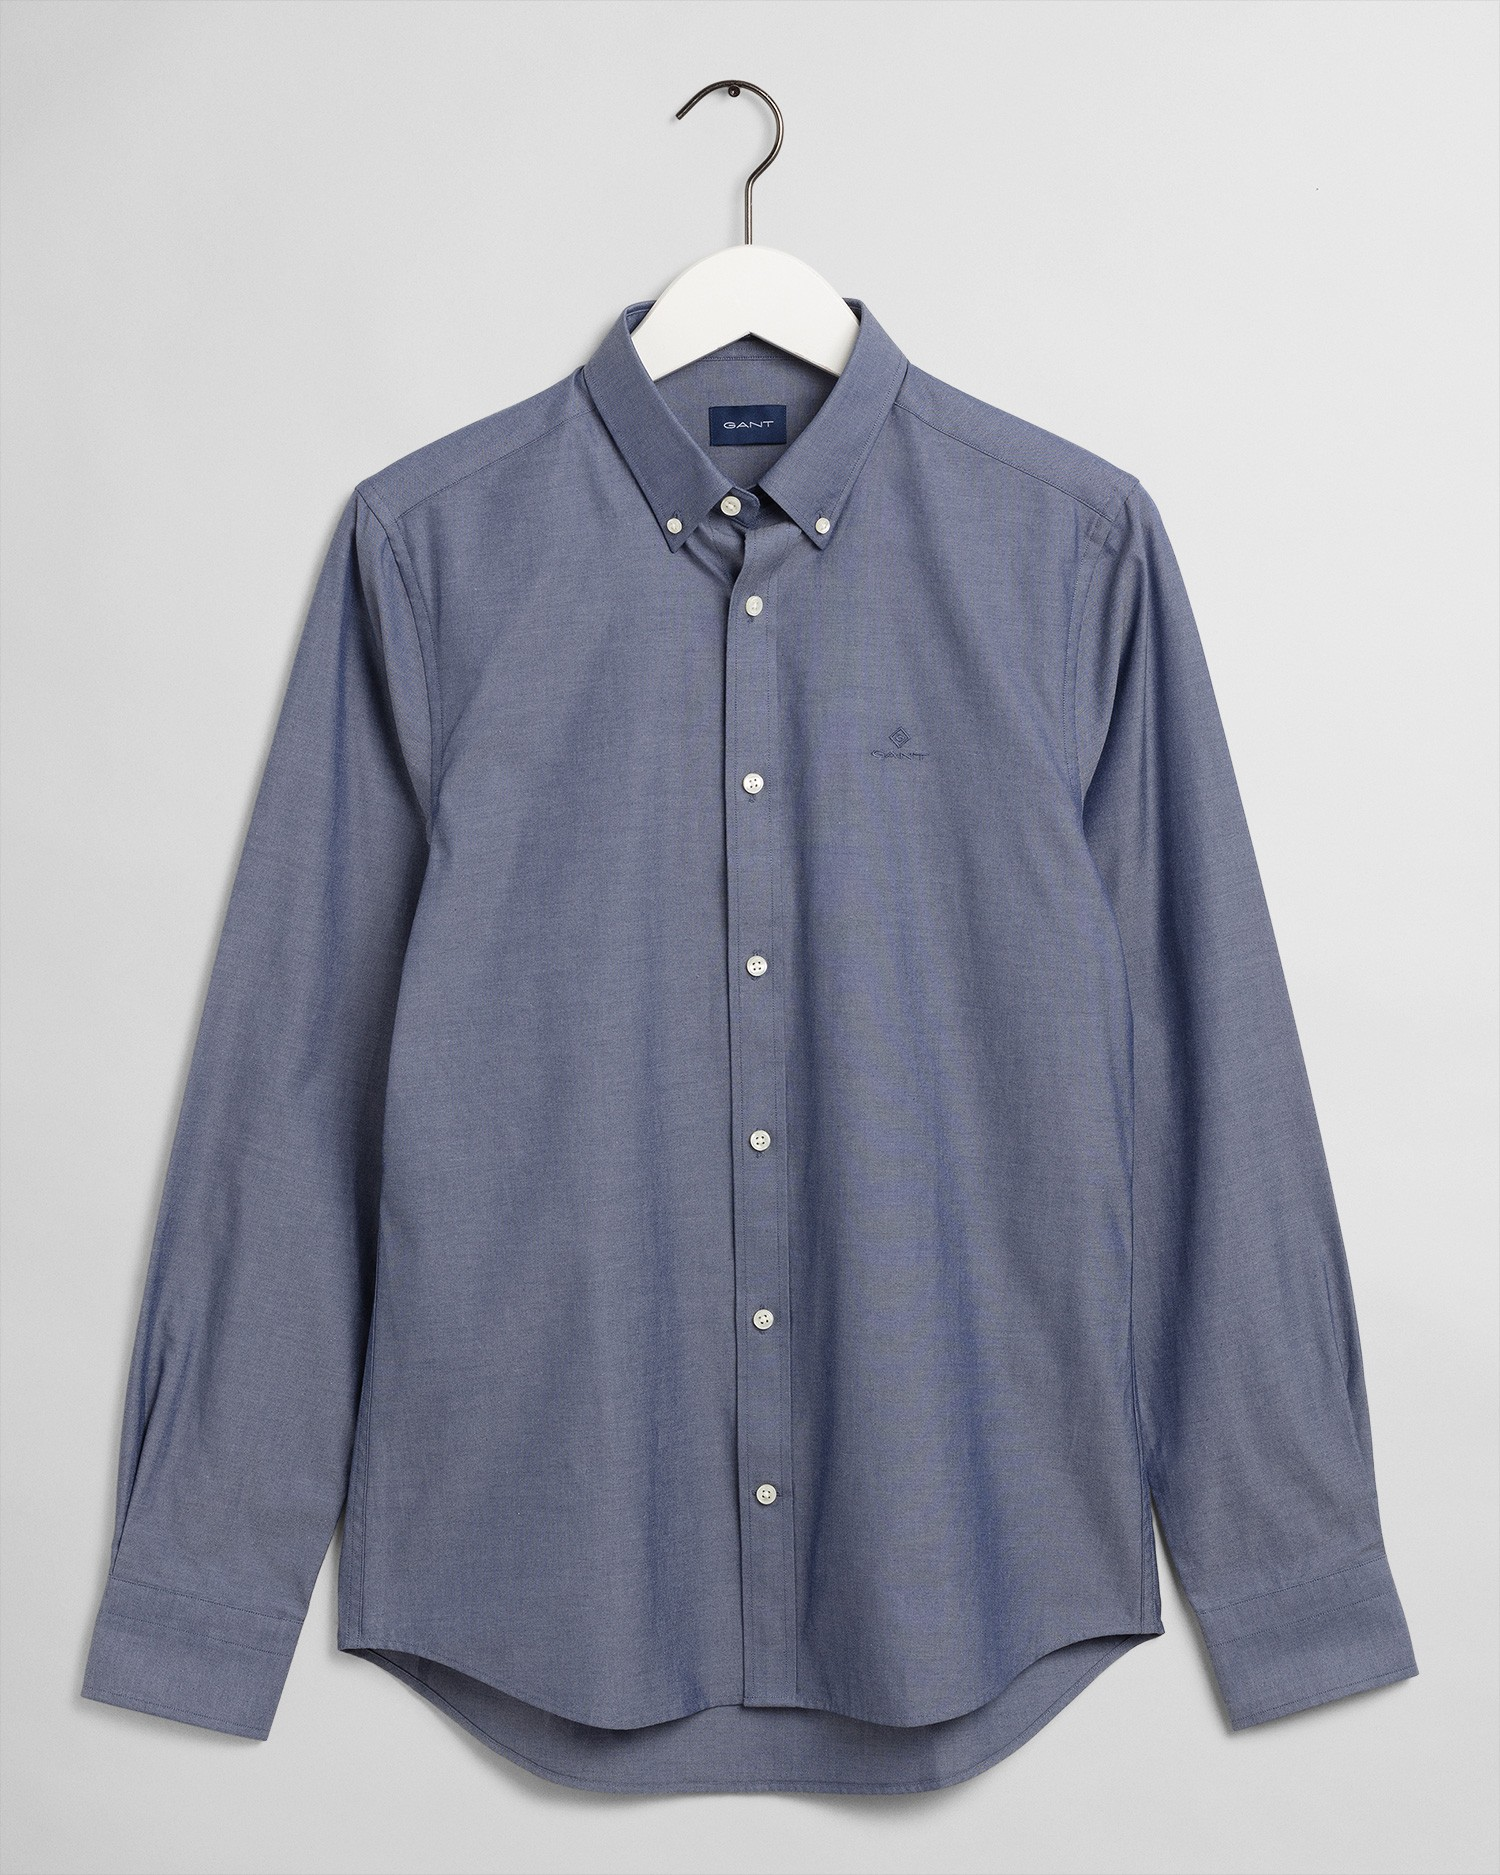 GANT Men's Shirt - 3060702